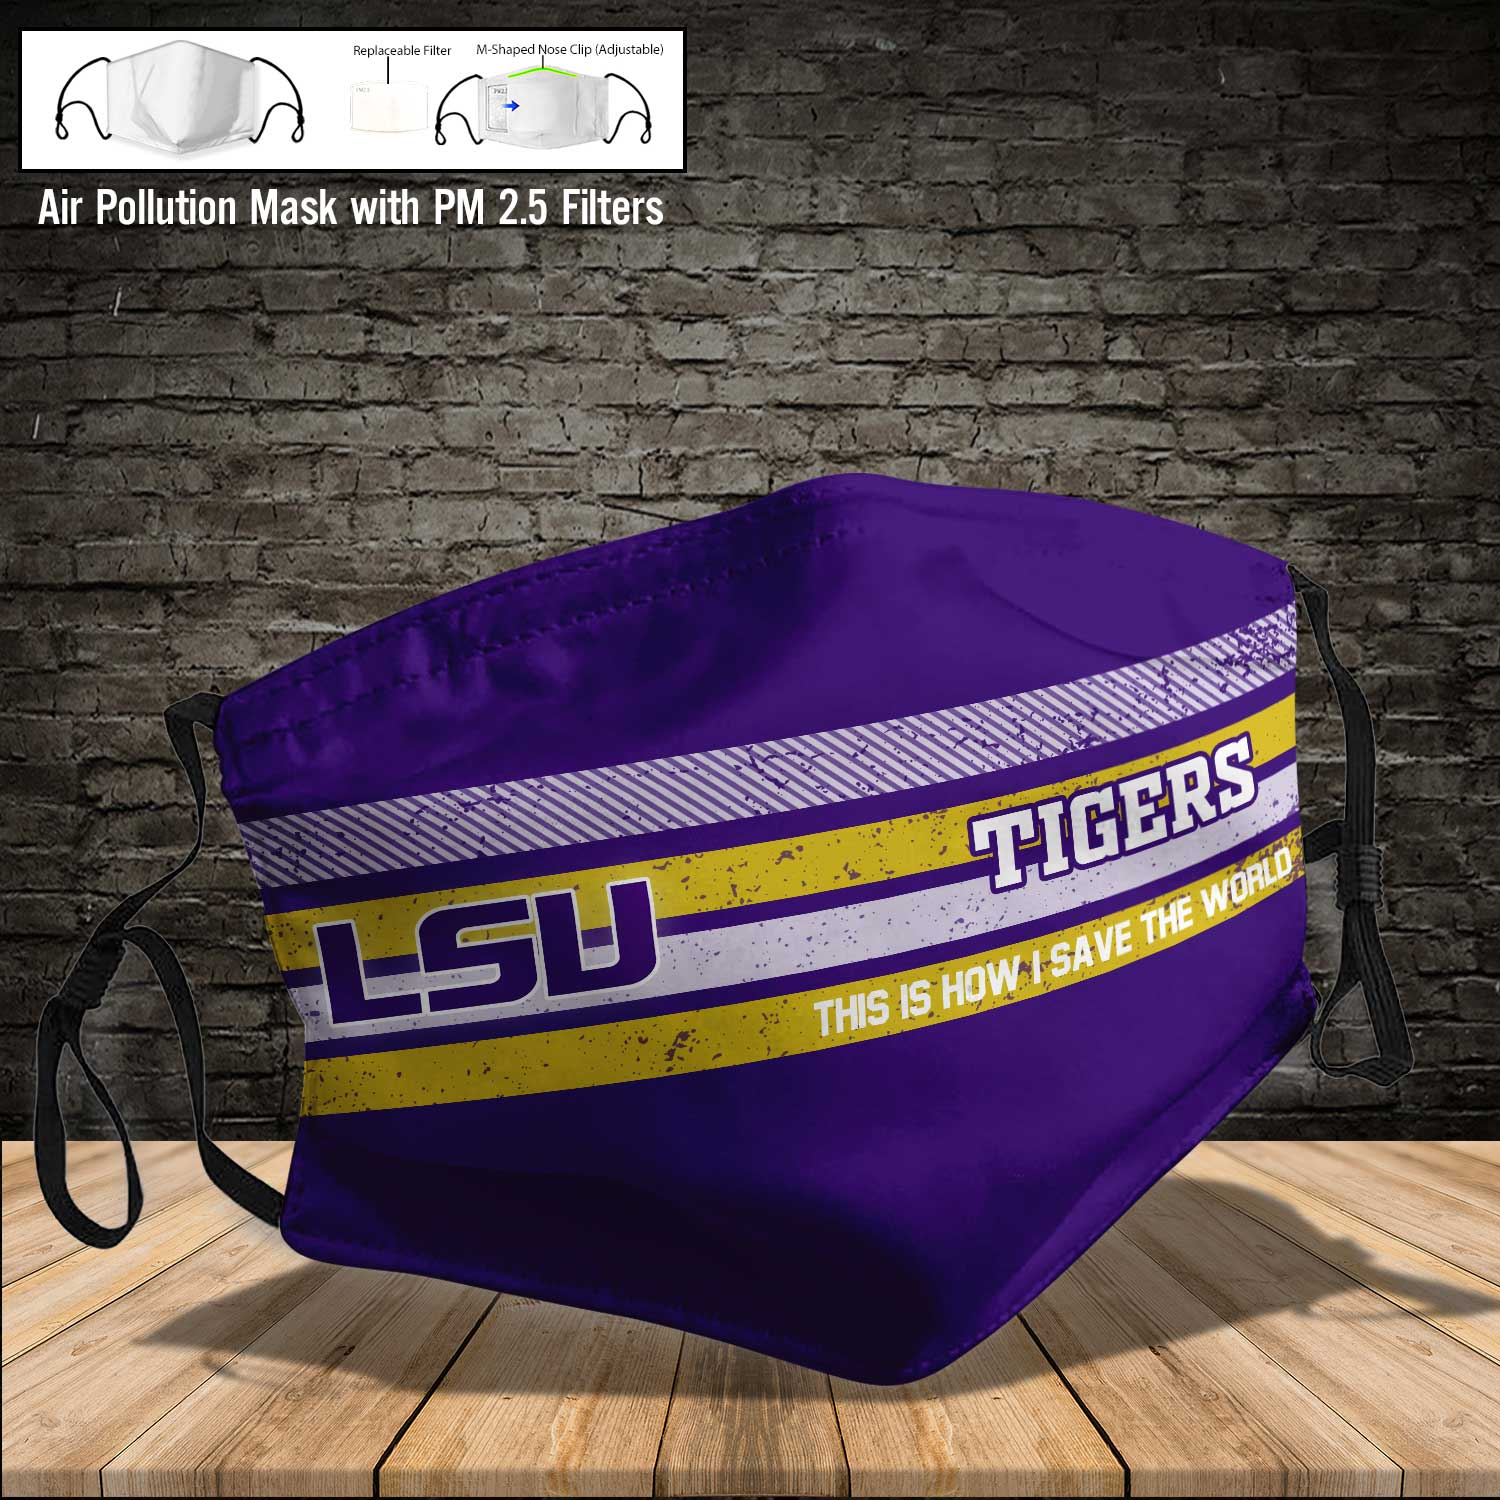 LSU tigers football this is how i save the world face mask 4